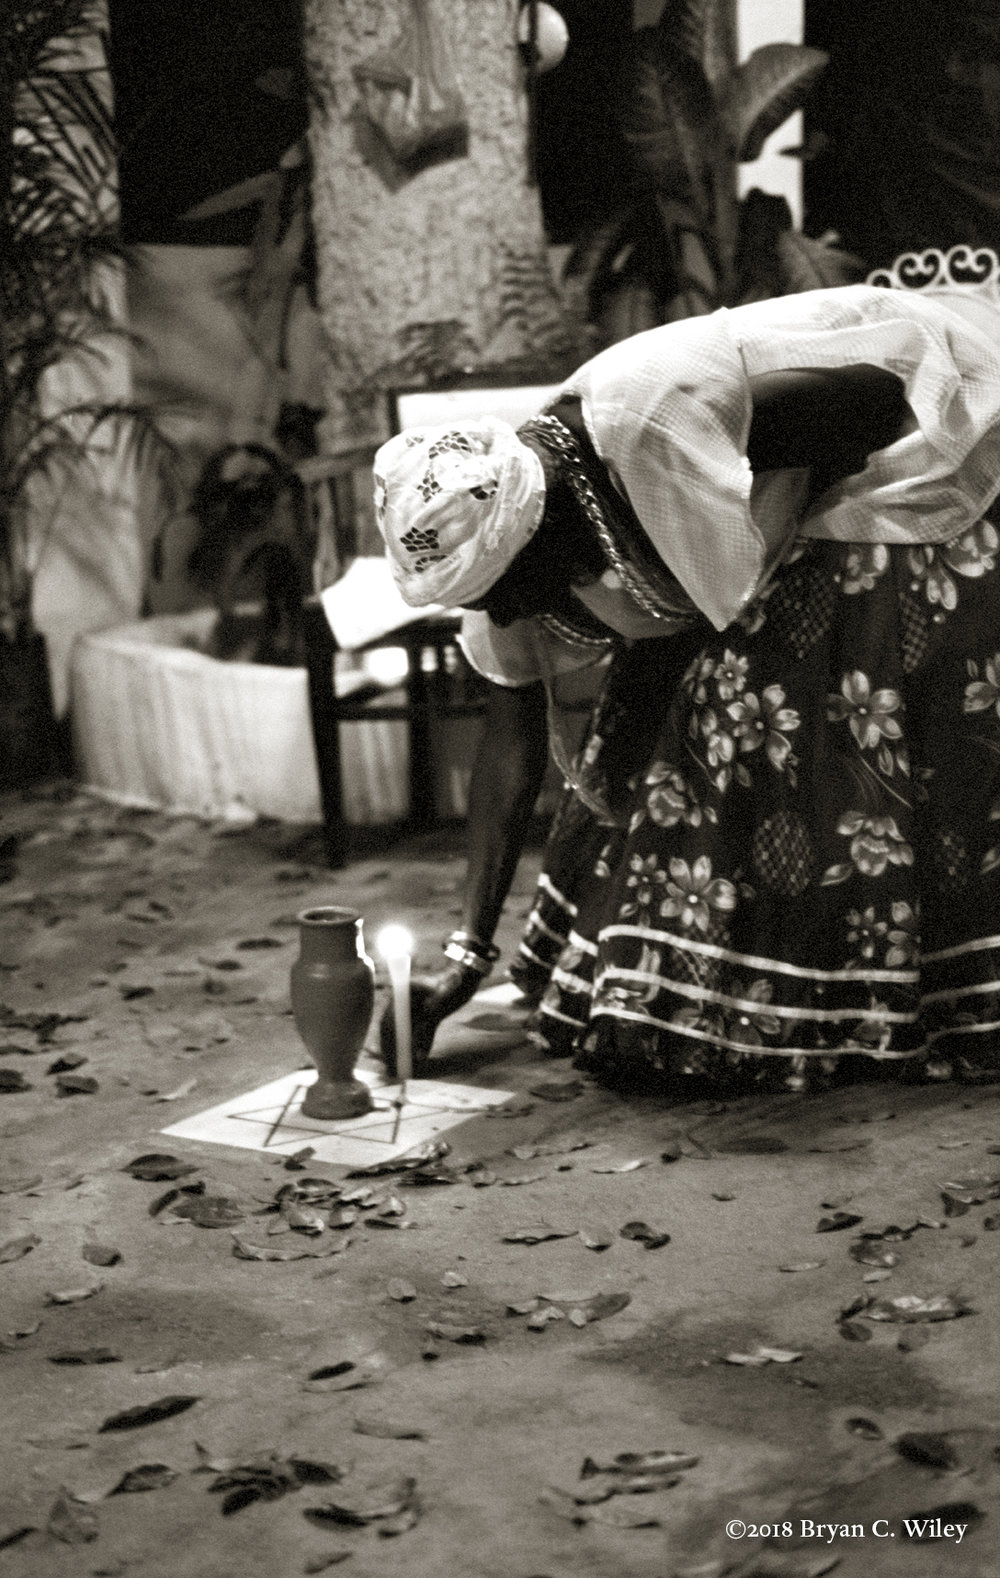 The Mae de Santo Noessa (mother of saints) starts the ceremony by lighting a candle and libations, pouring water to the earth. Sacred leaves called Ogbo cover the ground to attract the Orishas.   Cachoeira, Brazil